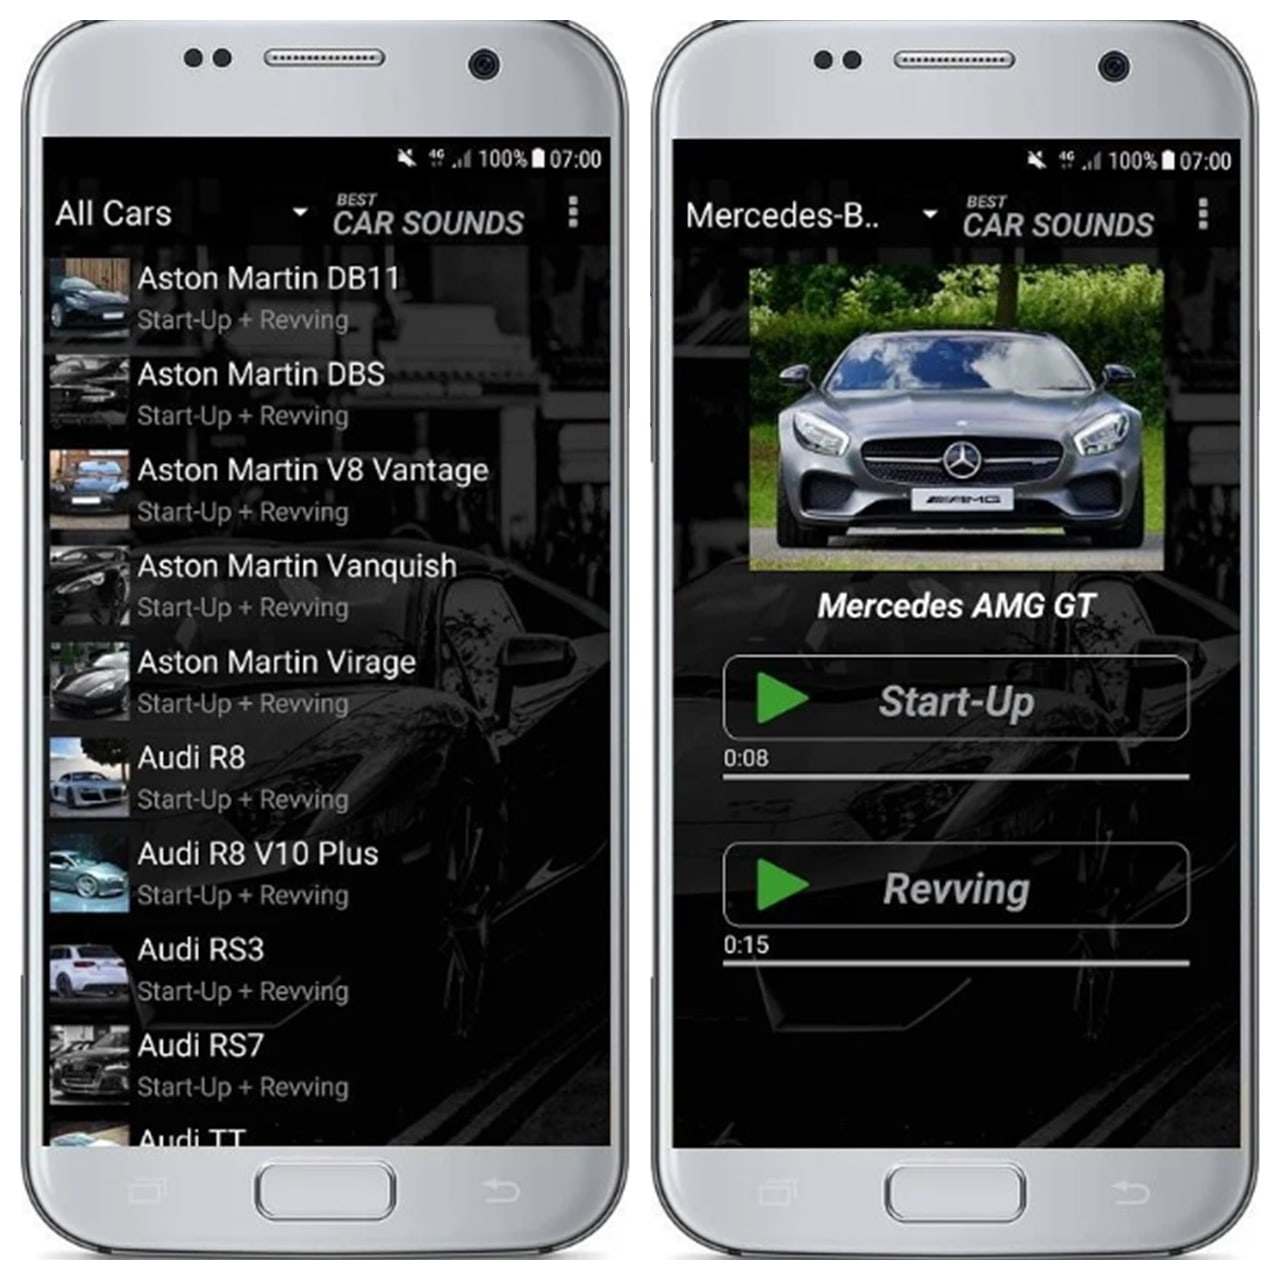 best car sounds app